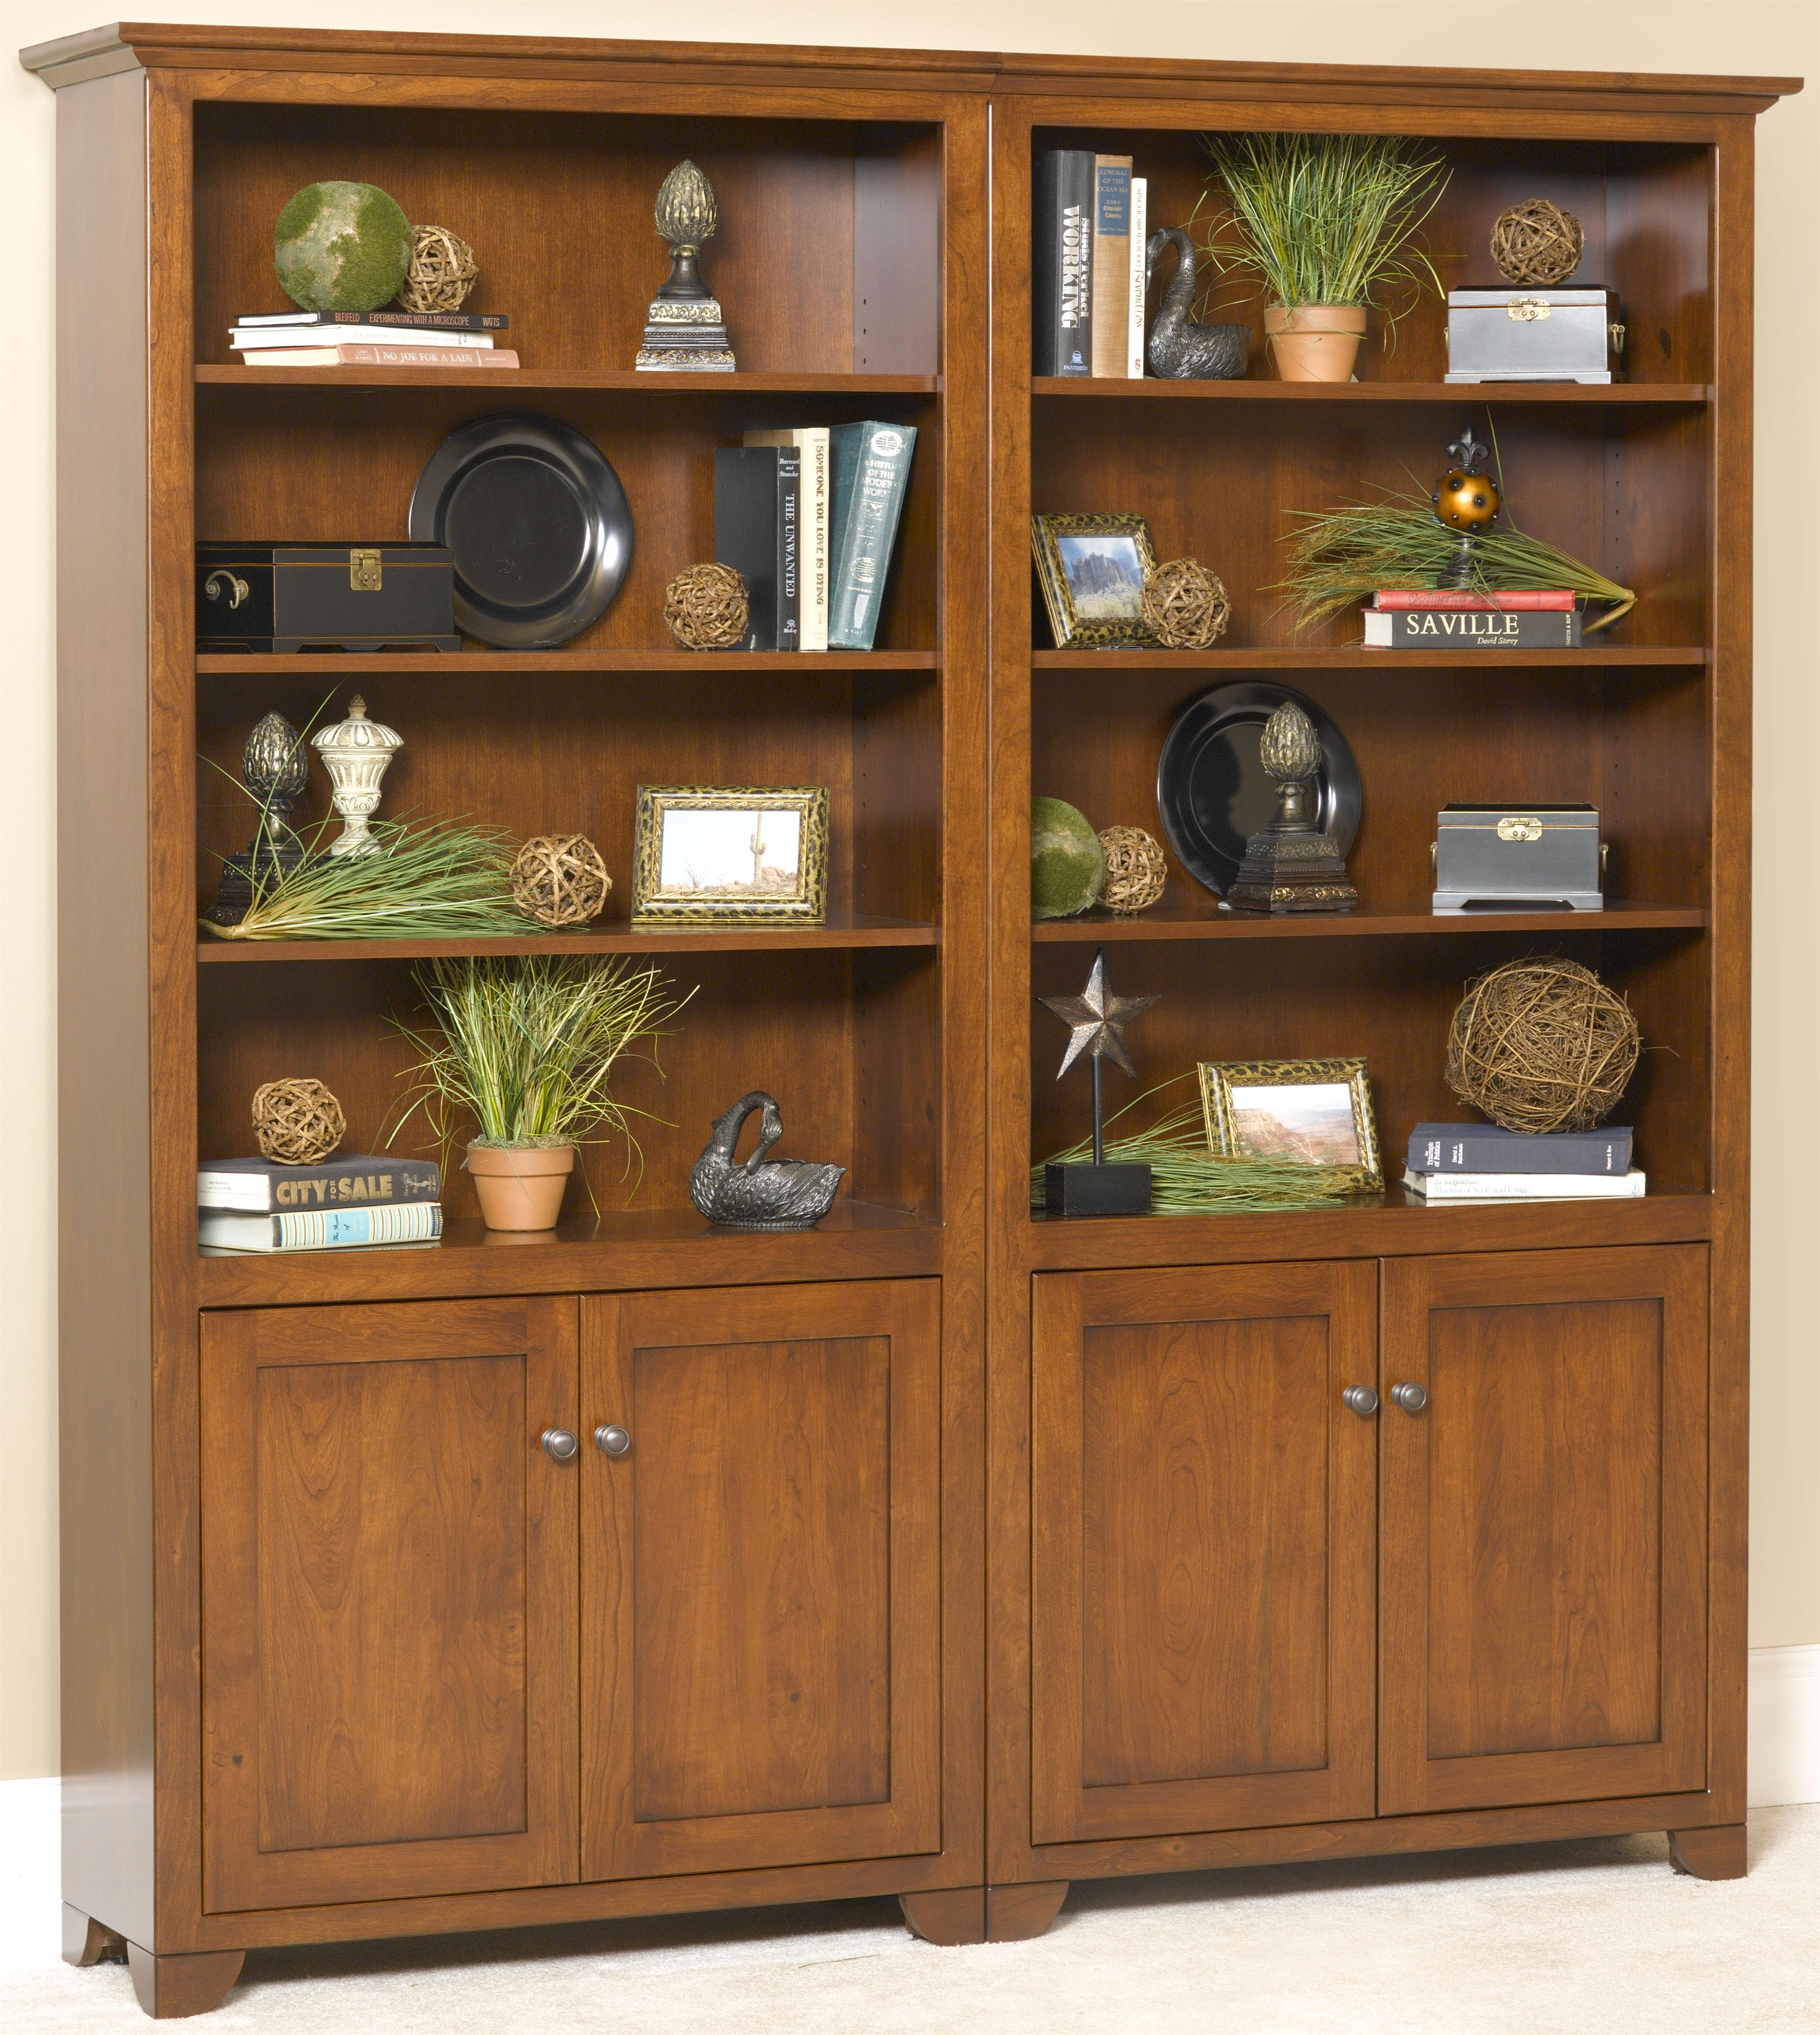 Wonder Wood Bookcases Customizable Cherry Valley Bookcase by Wonder Wood at Saugerties Furniture Mart